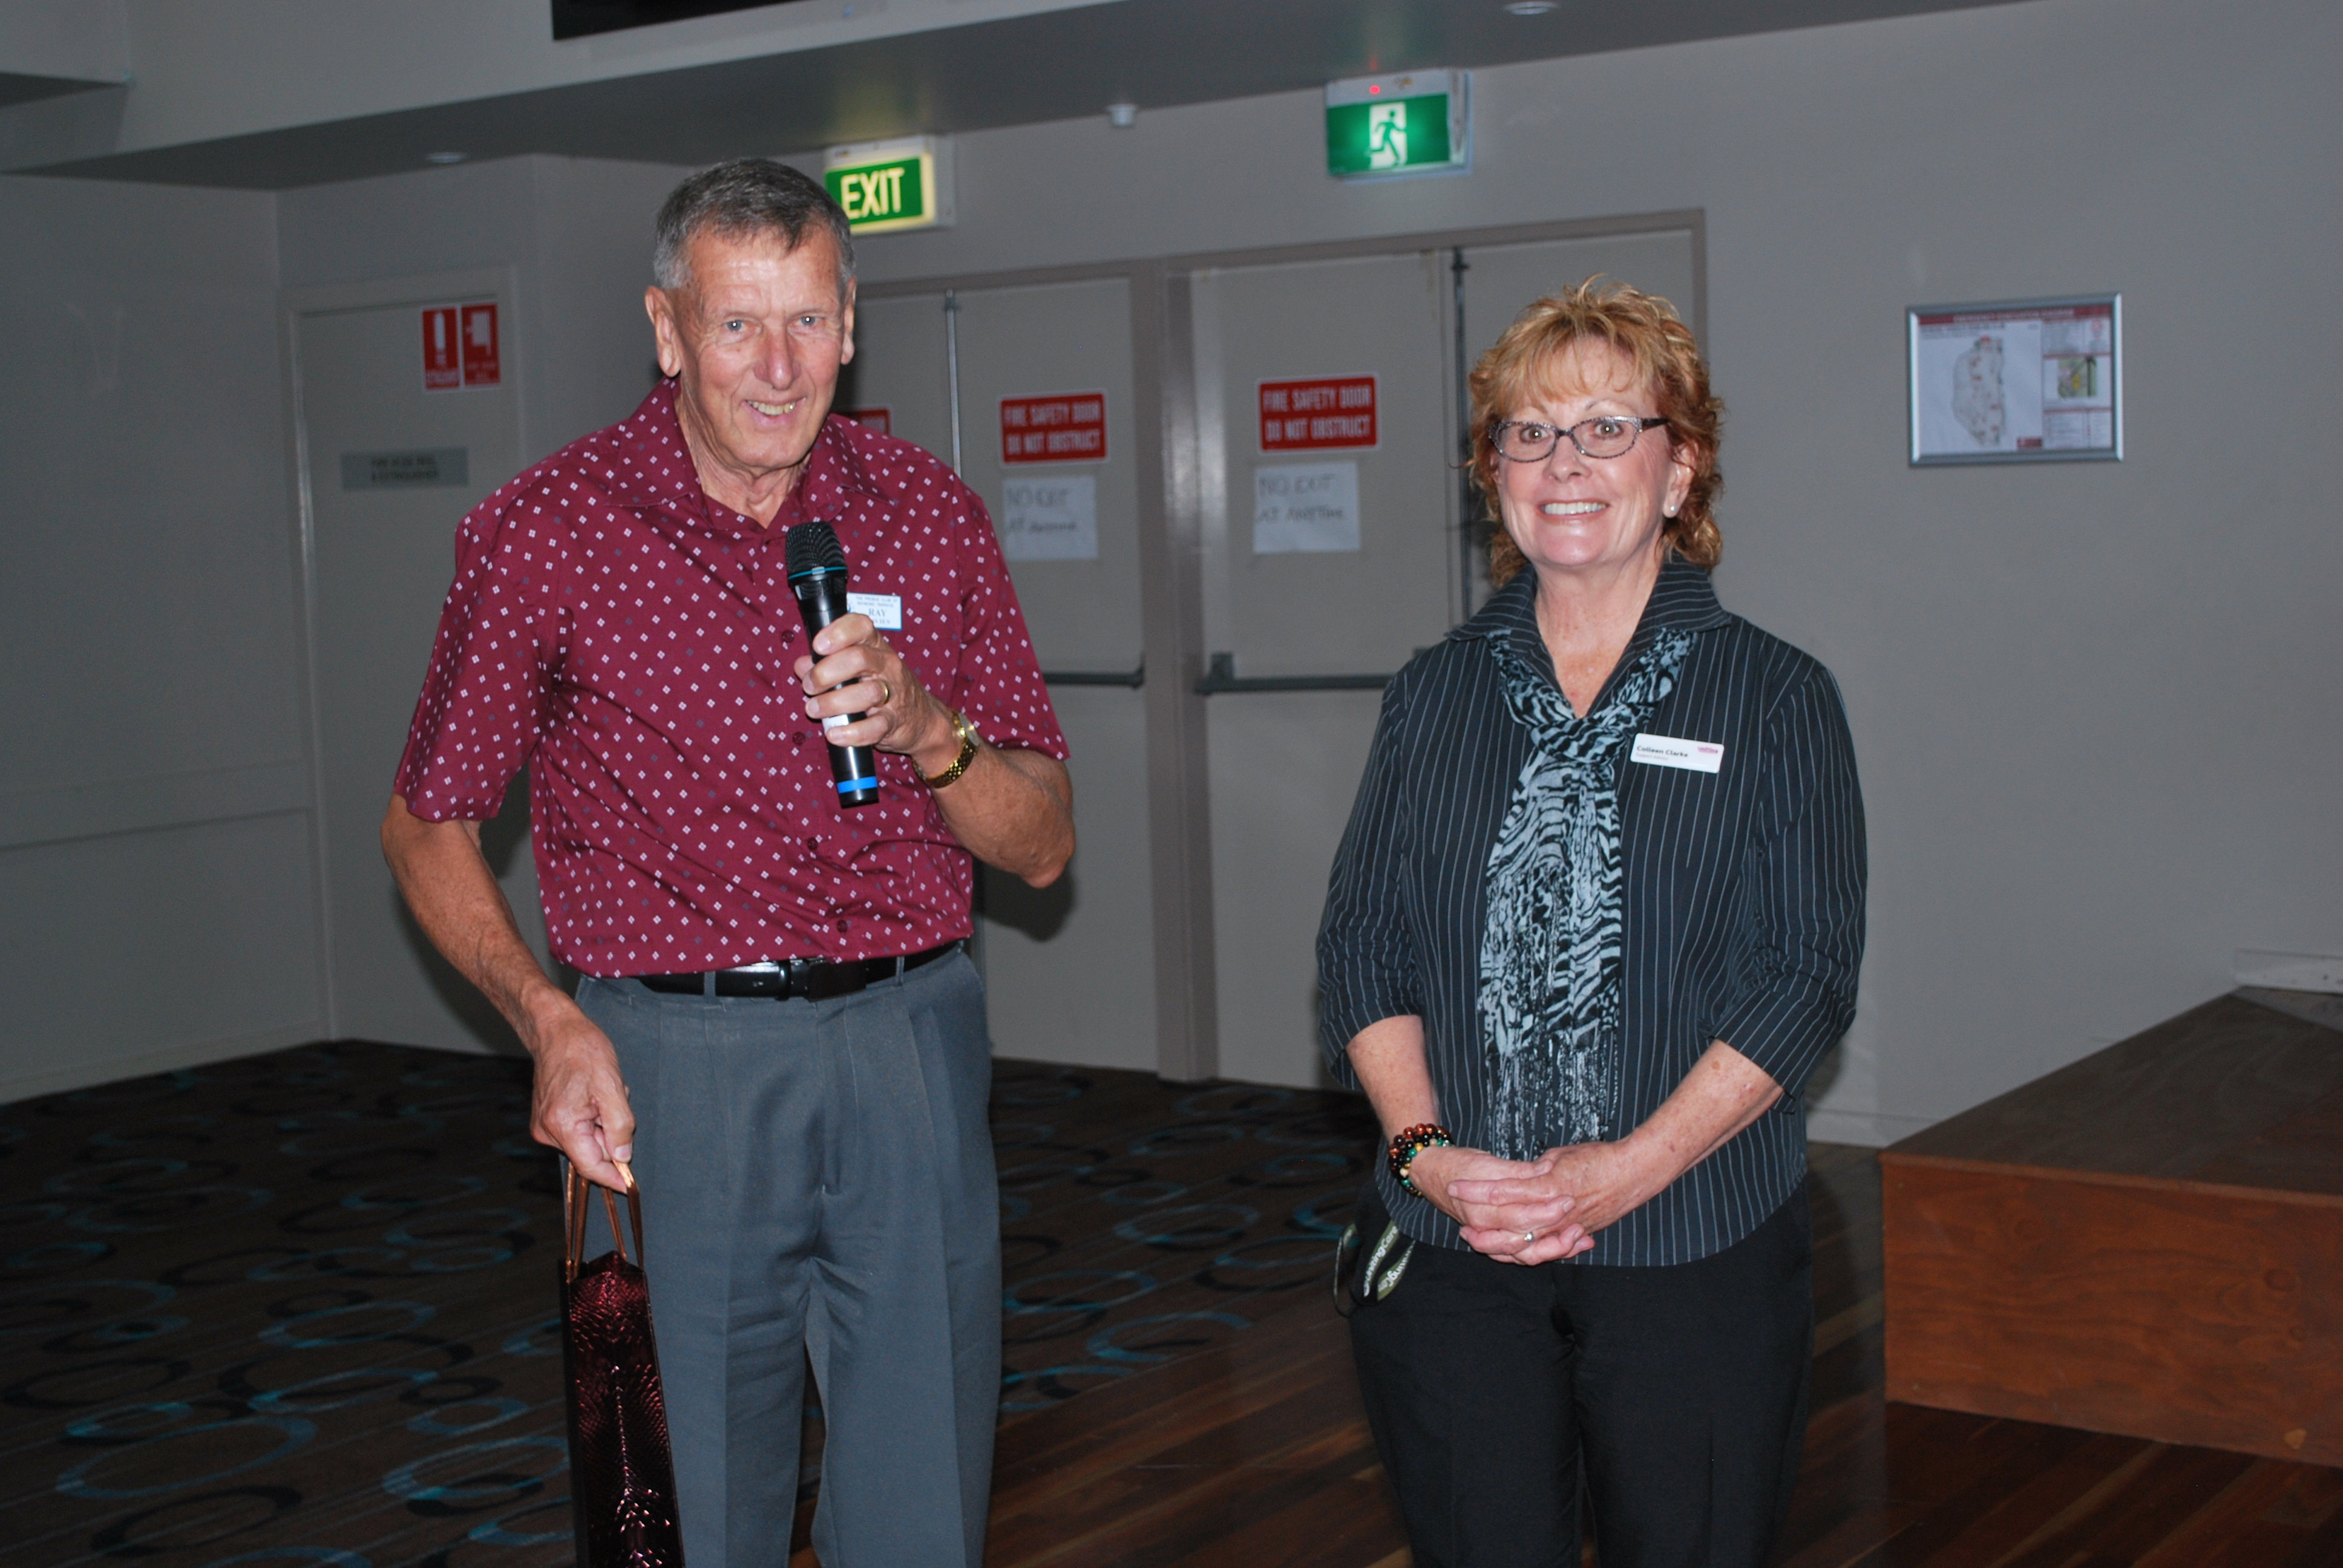 Ray Davies thanking guest speaker Colleen Clark from Uniting who enlightened the Probus group on Community Home Care Packages.